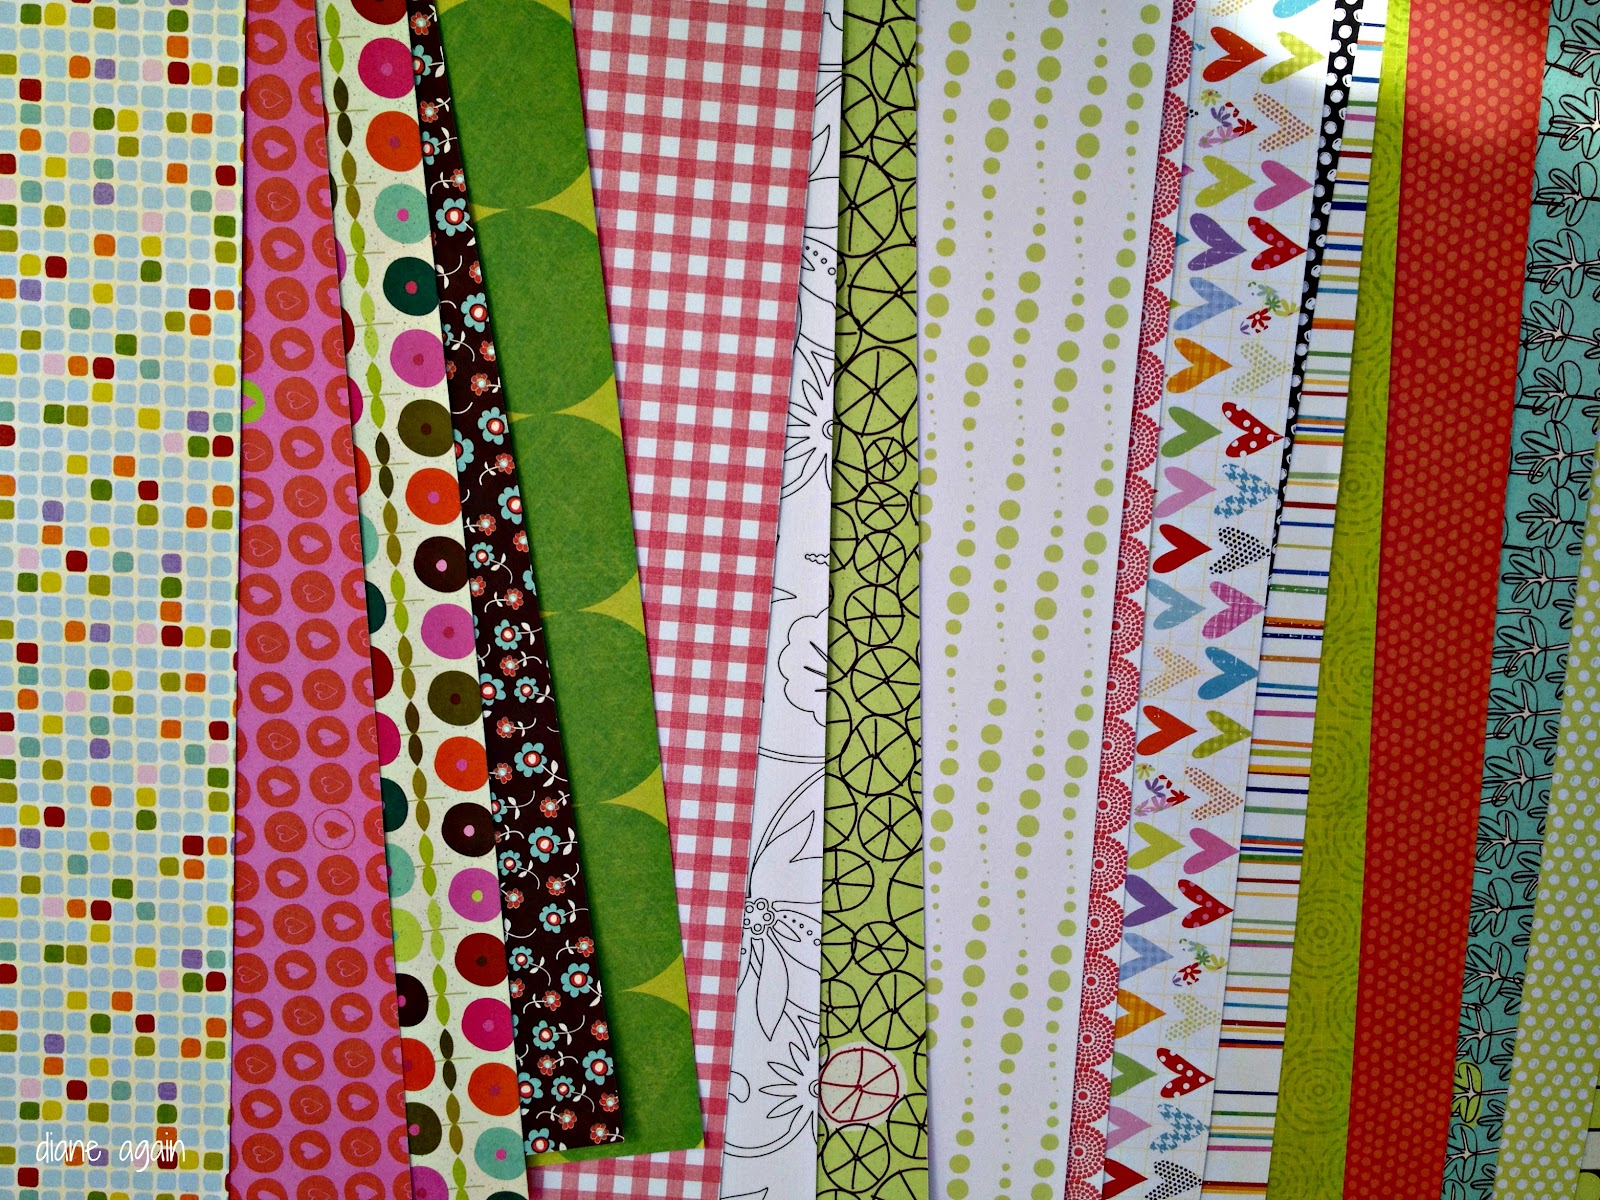 Scrapbook paper as wallpaper - Here S The Thing About Any Diy Project They Never Work Out Exactly As You Expect I Consider That To Be Part Of The Fun Maybe It S The Rebel In My Soul